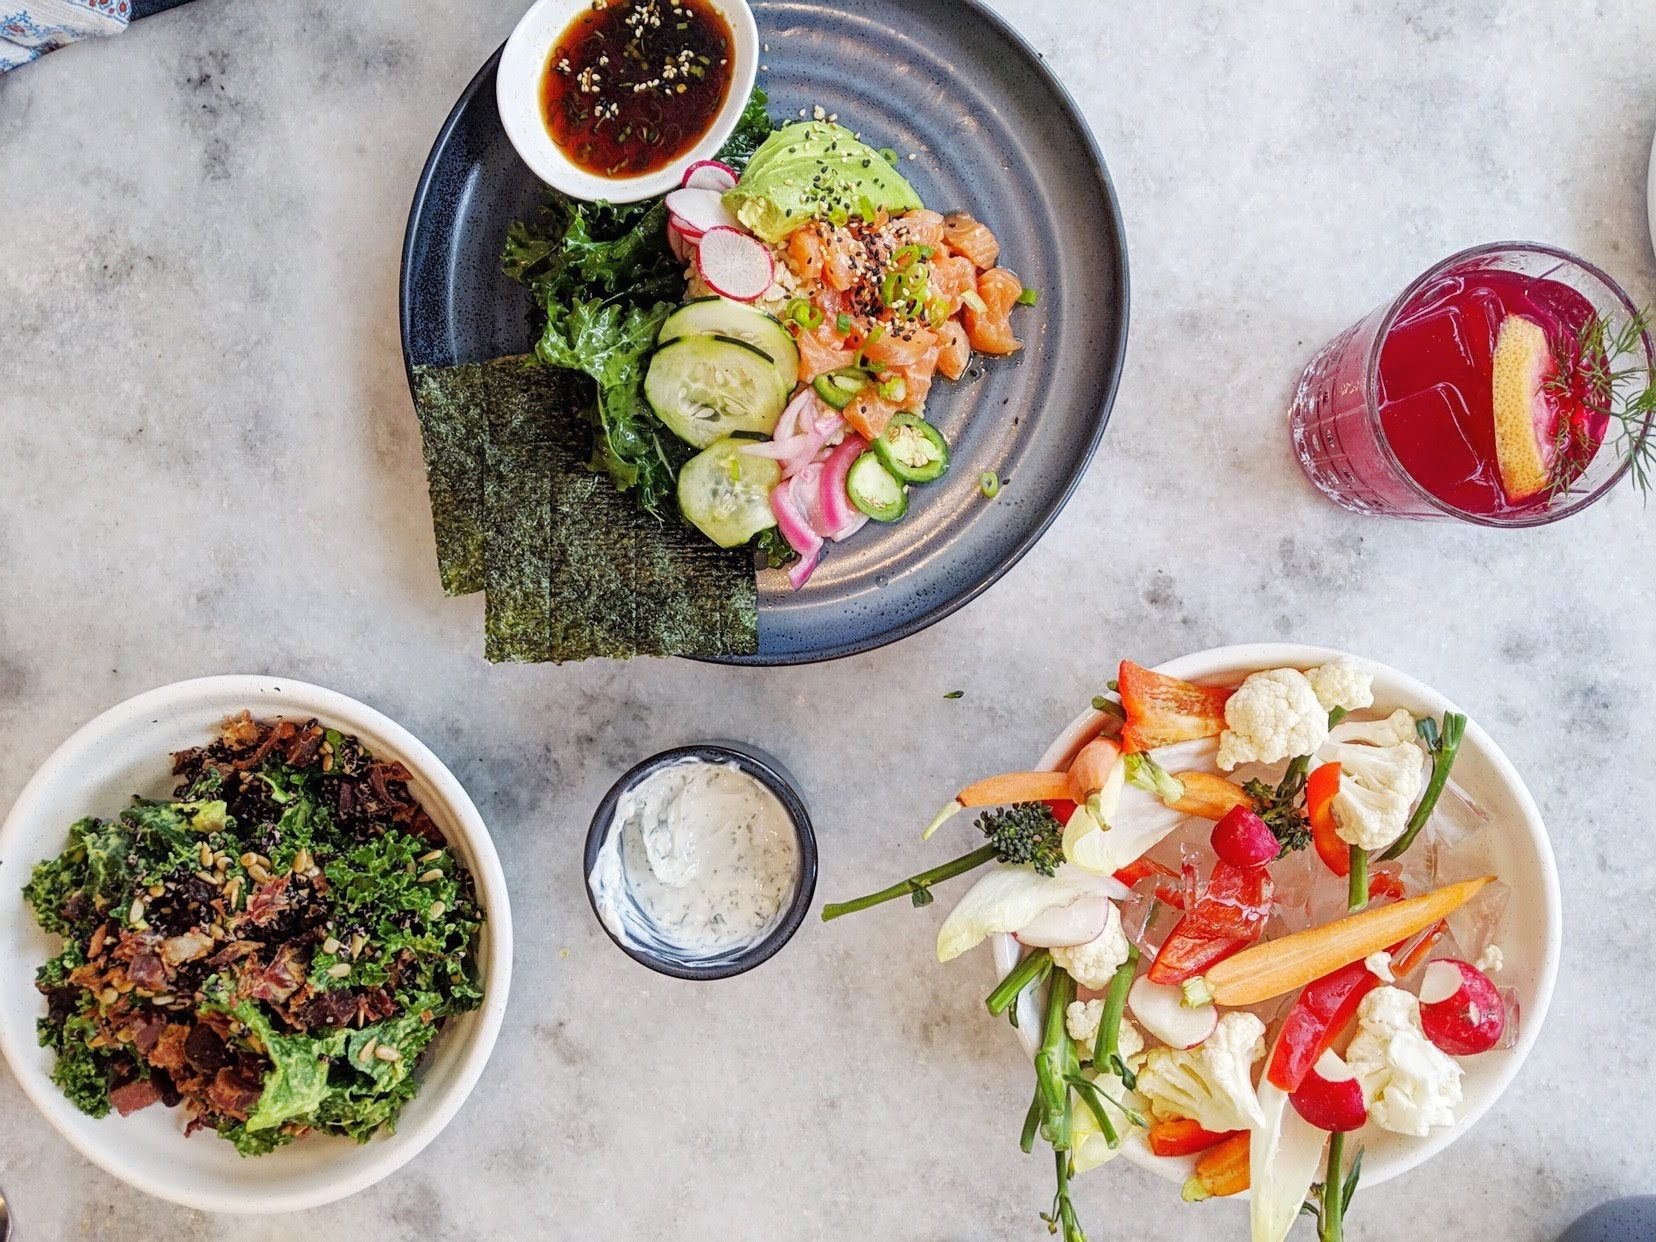 Cuisine Royale Eat Food My Favorite Healthy Restaurants In Austin The Hungry Chronicles